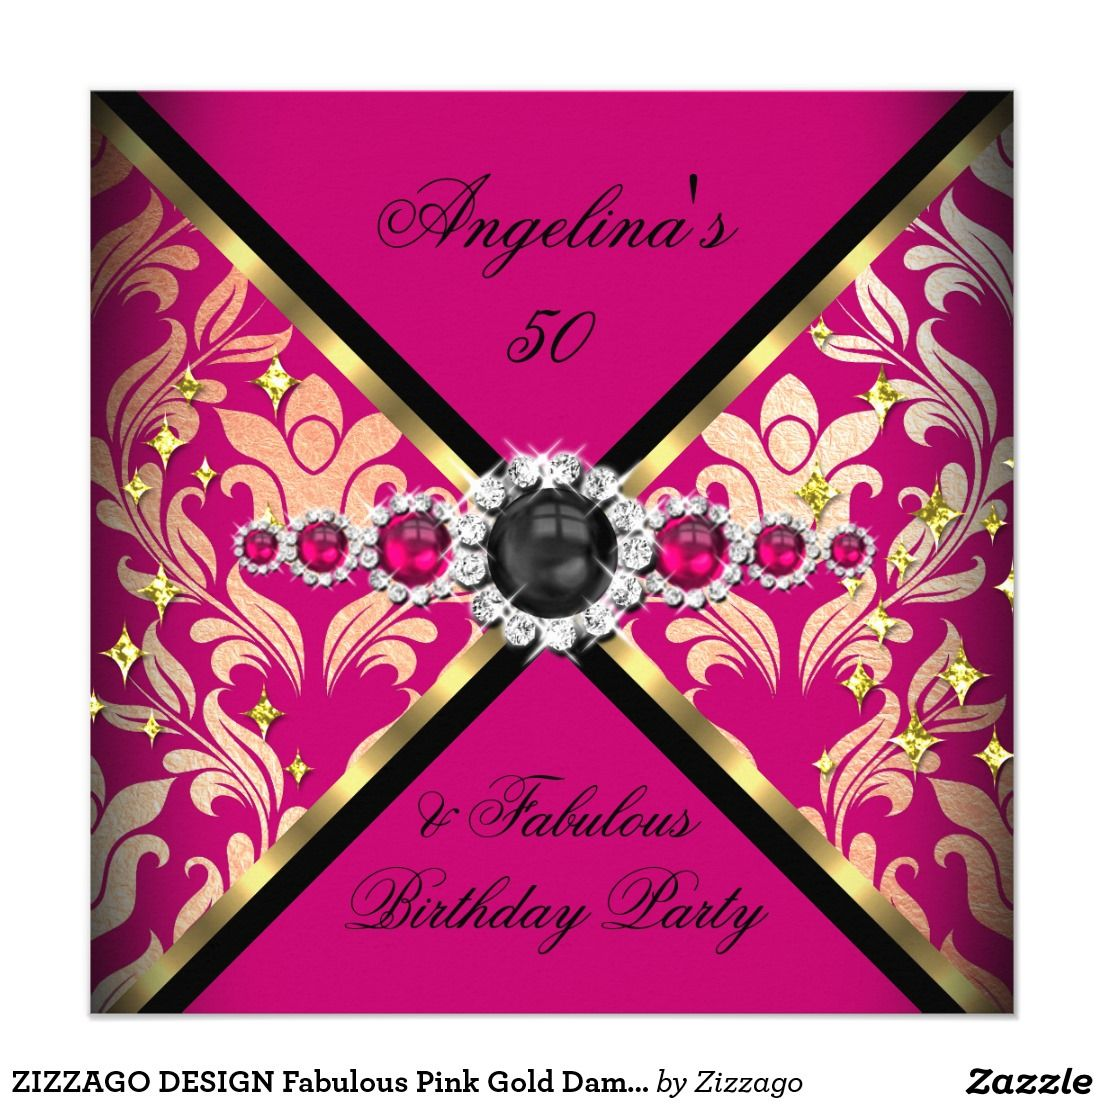 ZIZZAGO DESIGN Fabulous Pink Gold Damask Party 2 5.25x5.25 Square ...